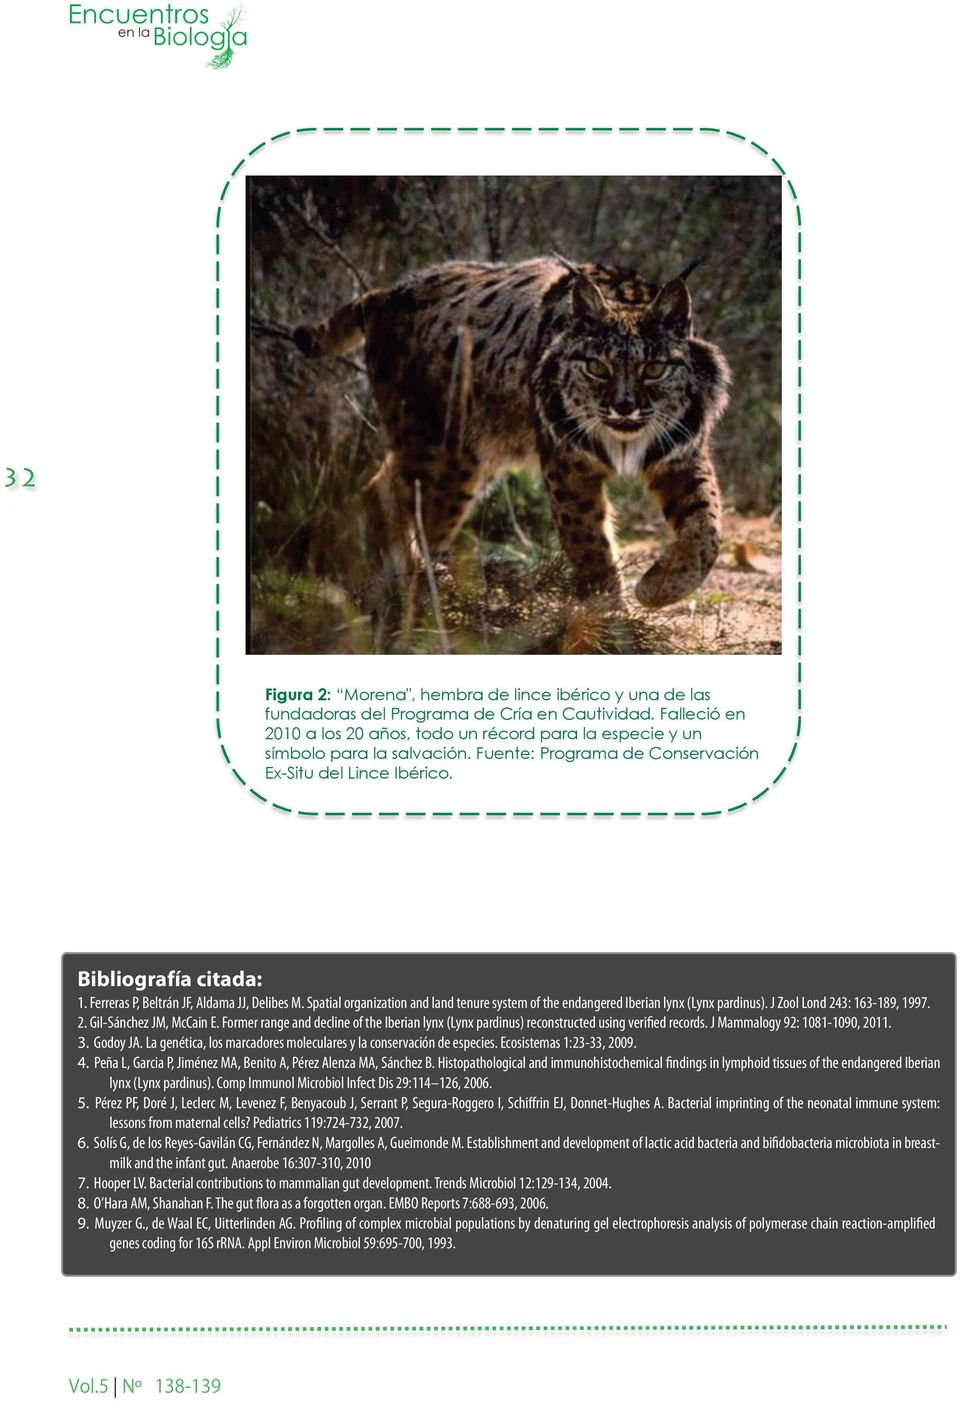 Spatial organization and land tenure system of the endangered Iberian lynx (Lynx pardinus). J Zool Lond 243: 163-189, 1997. 2. Gil-Sánchez JM, McCain E.